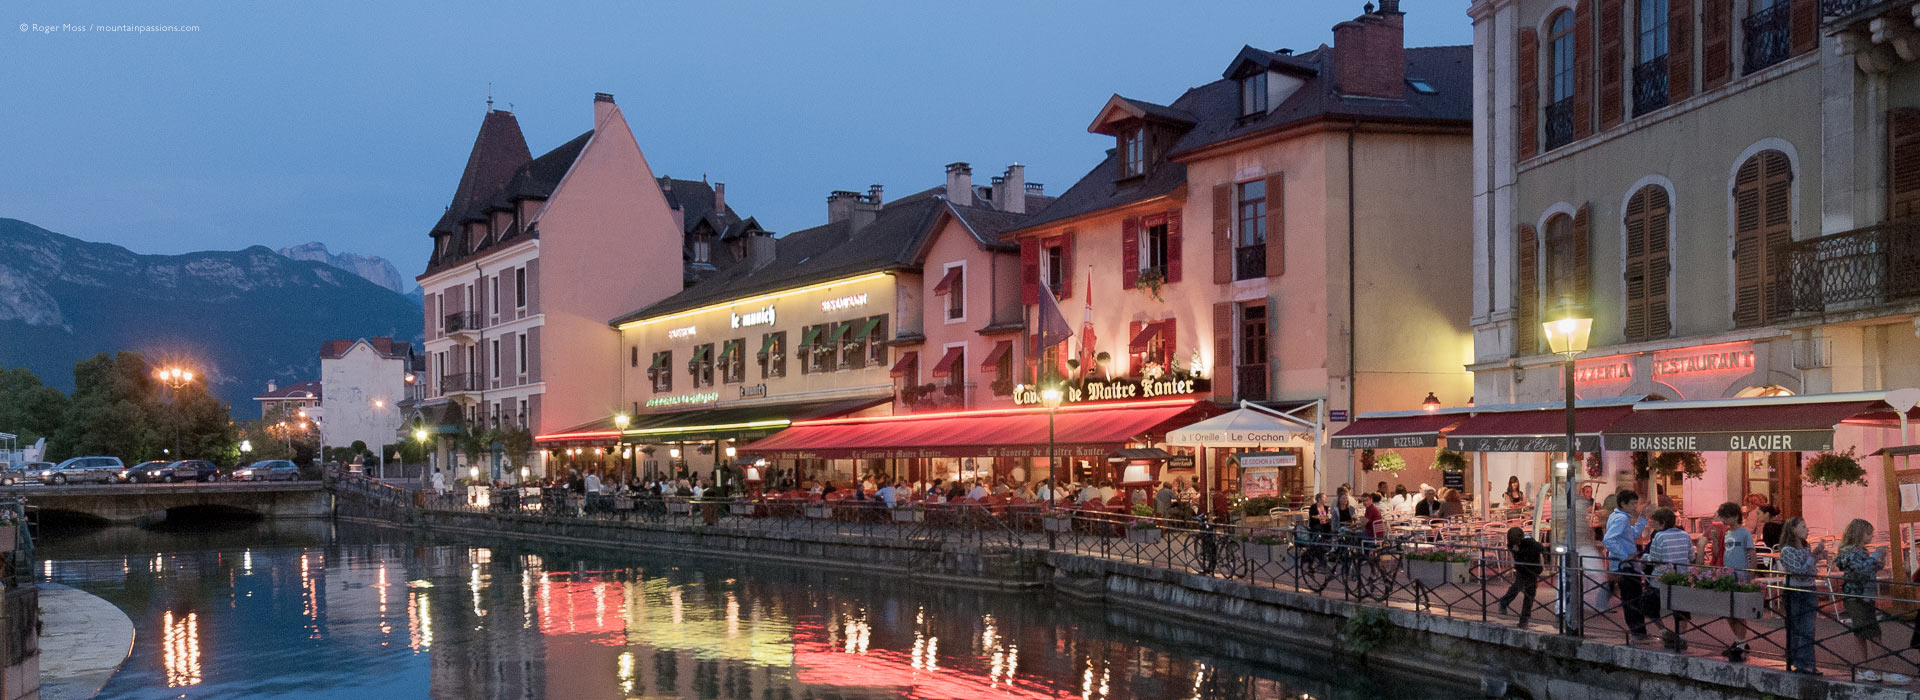 Evening view of quayside bars and restaurants in Annecy